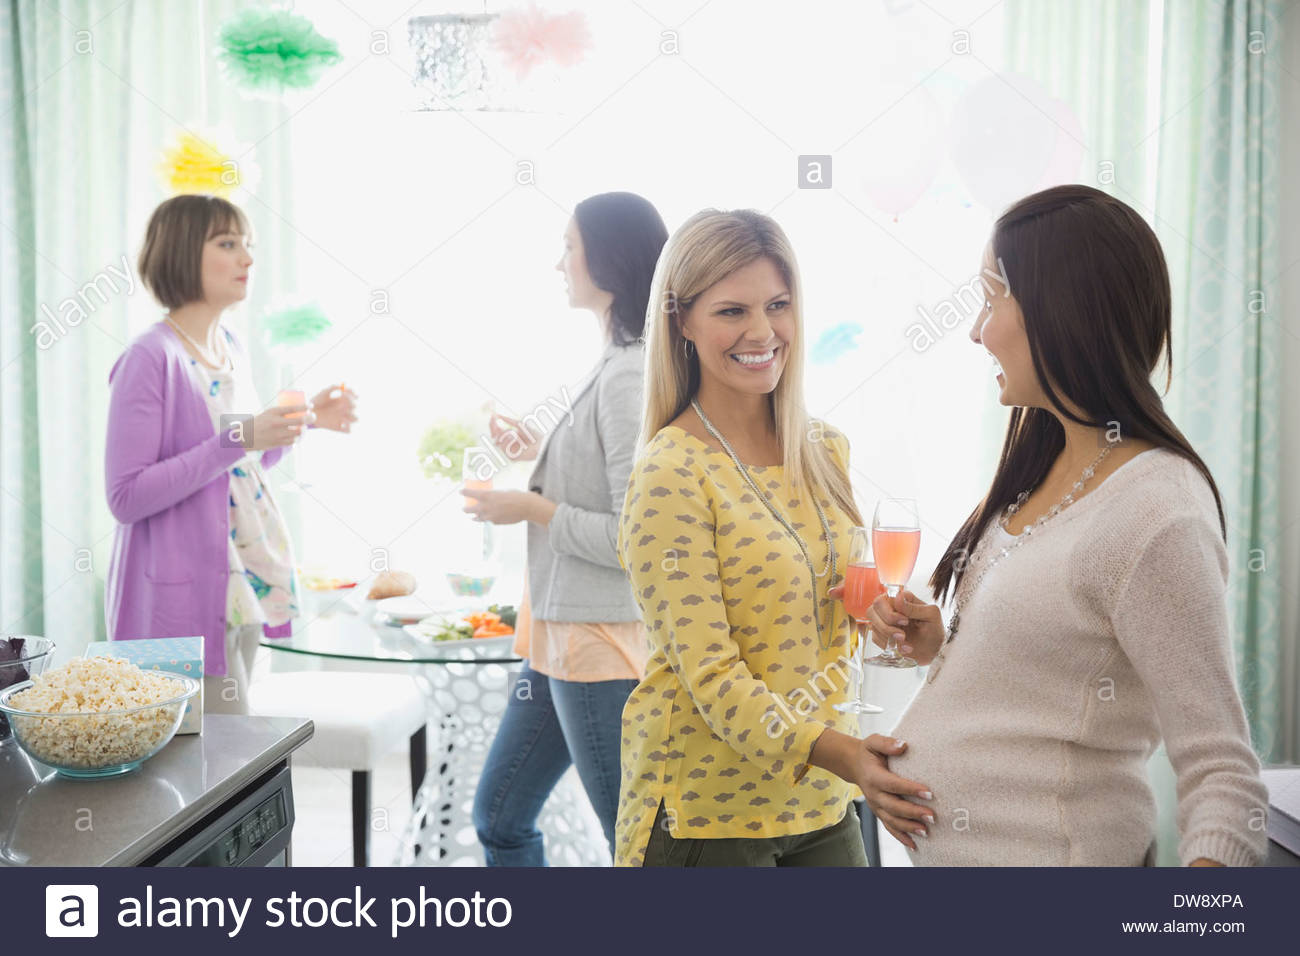 Friend touching pregnant womans belly at baby shower - Stock Image